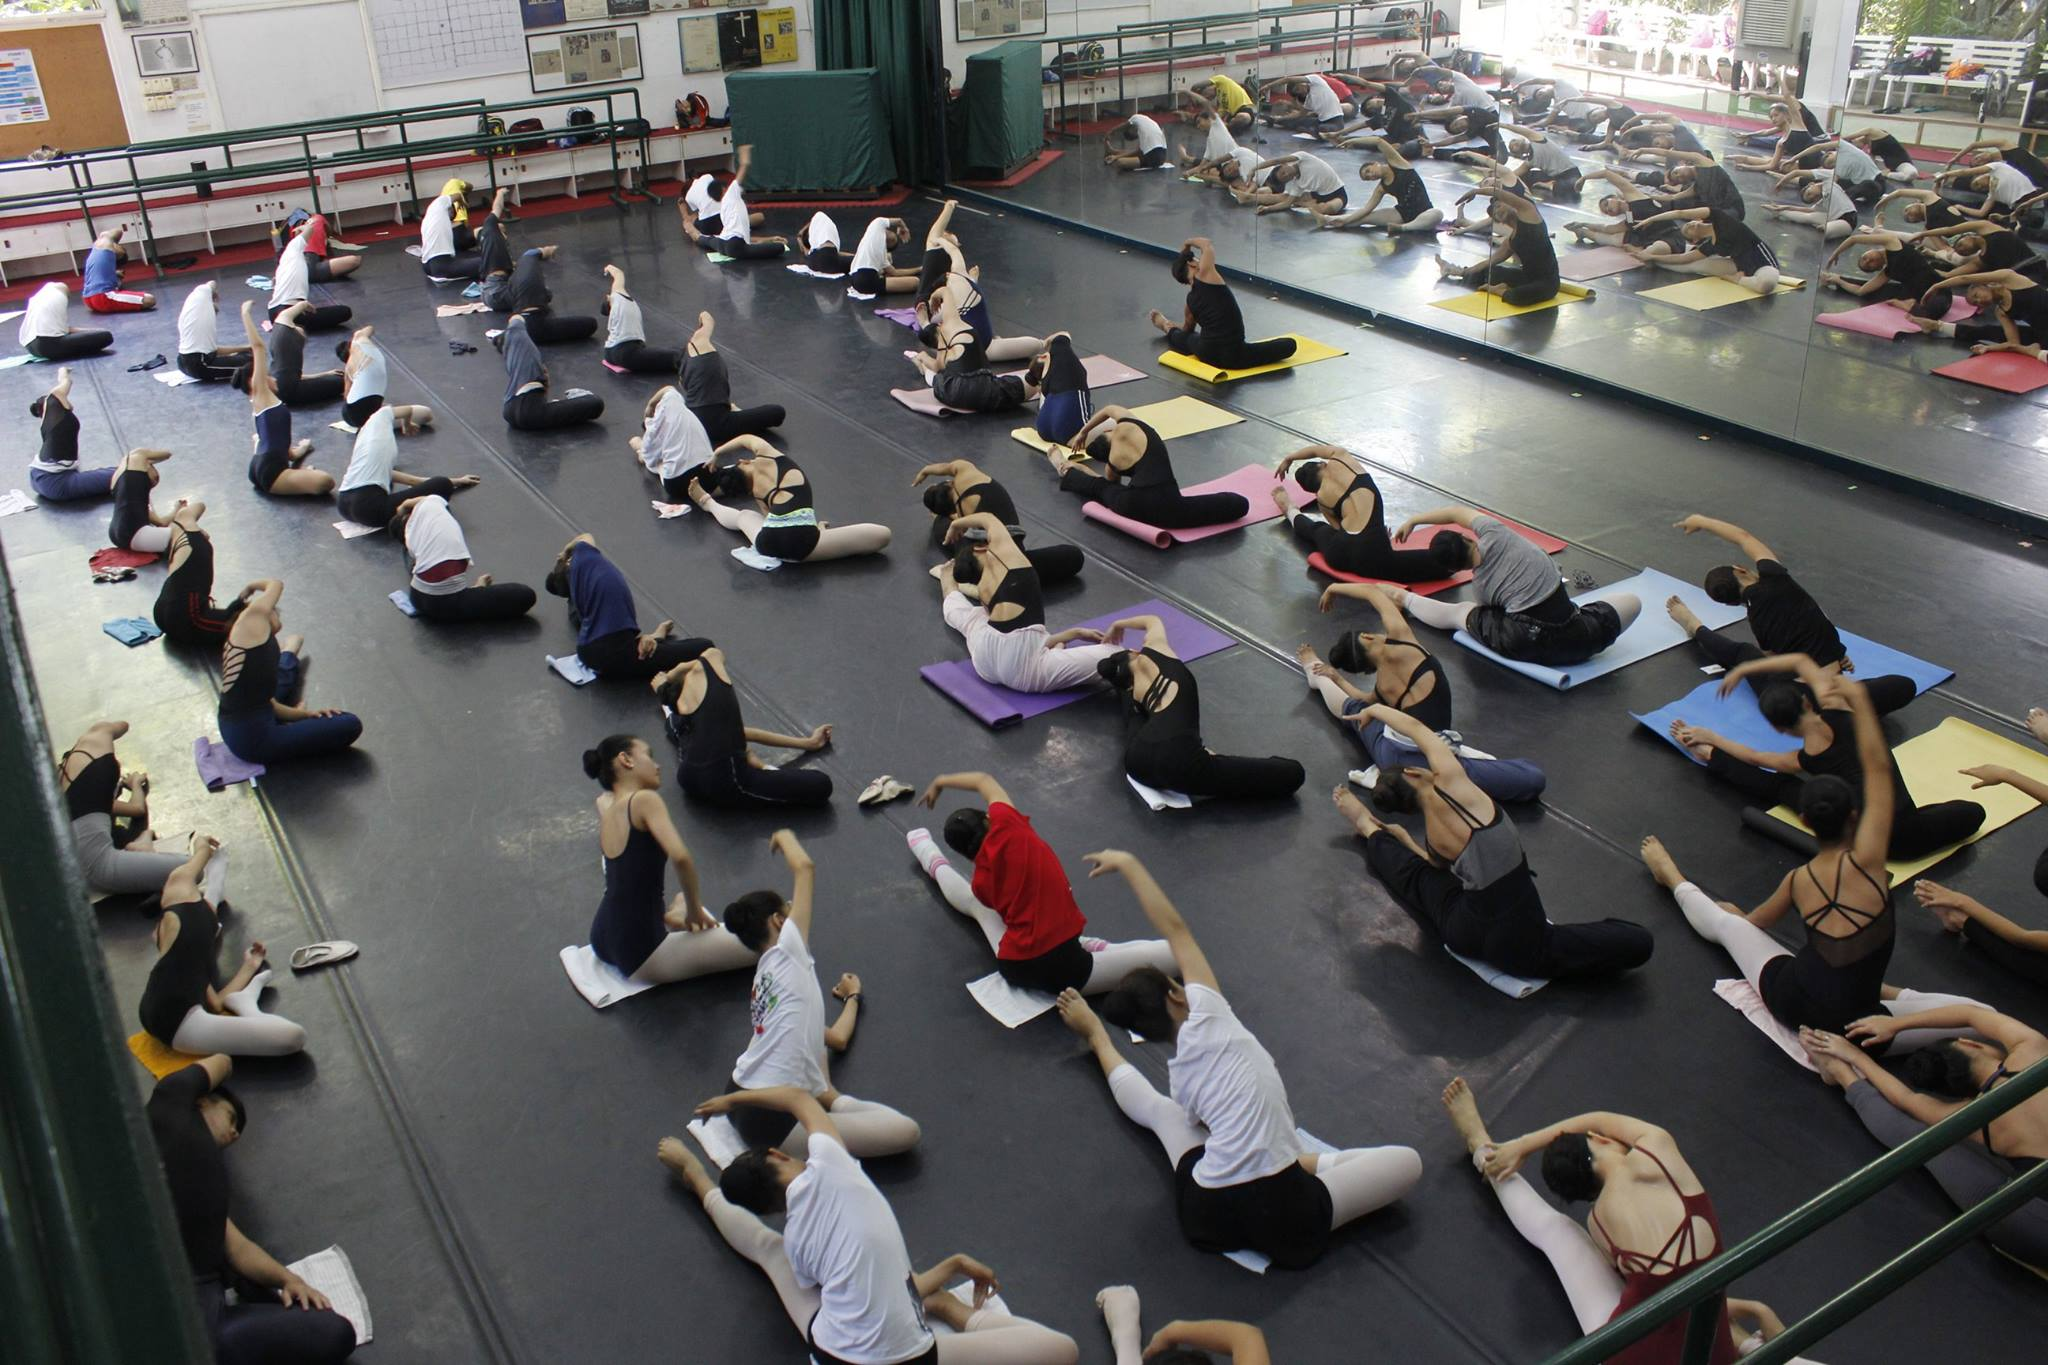 Ballet enthusiasts will have a chance to take sample classes during Ballet Manila's open house. Photo by Jimmy Villanueva